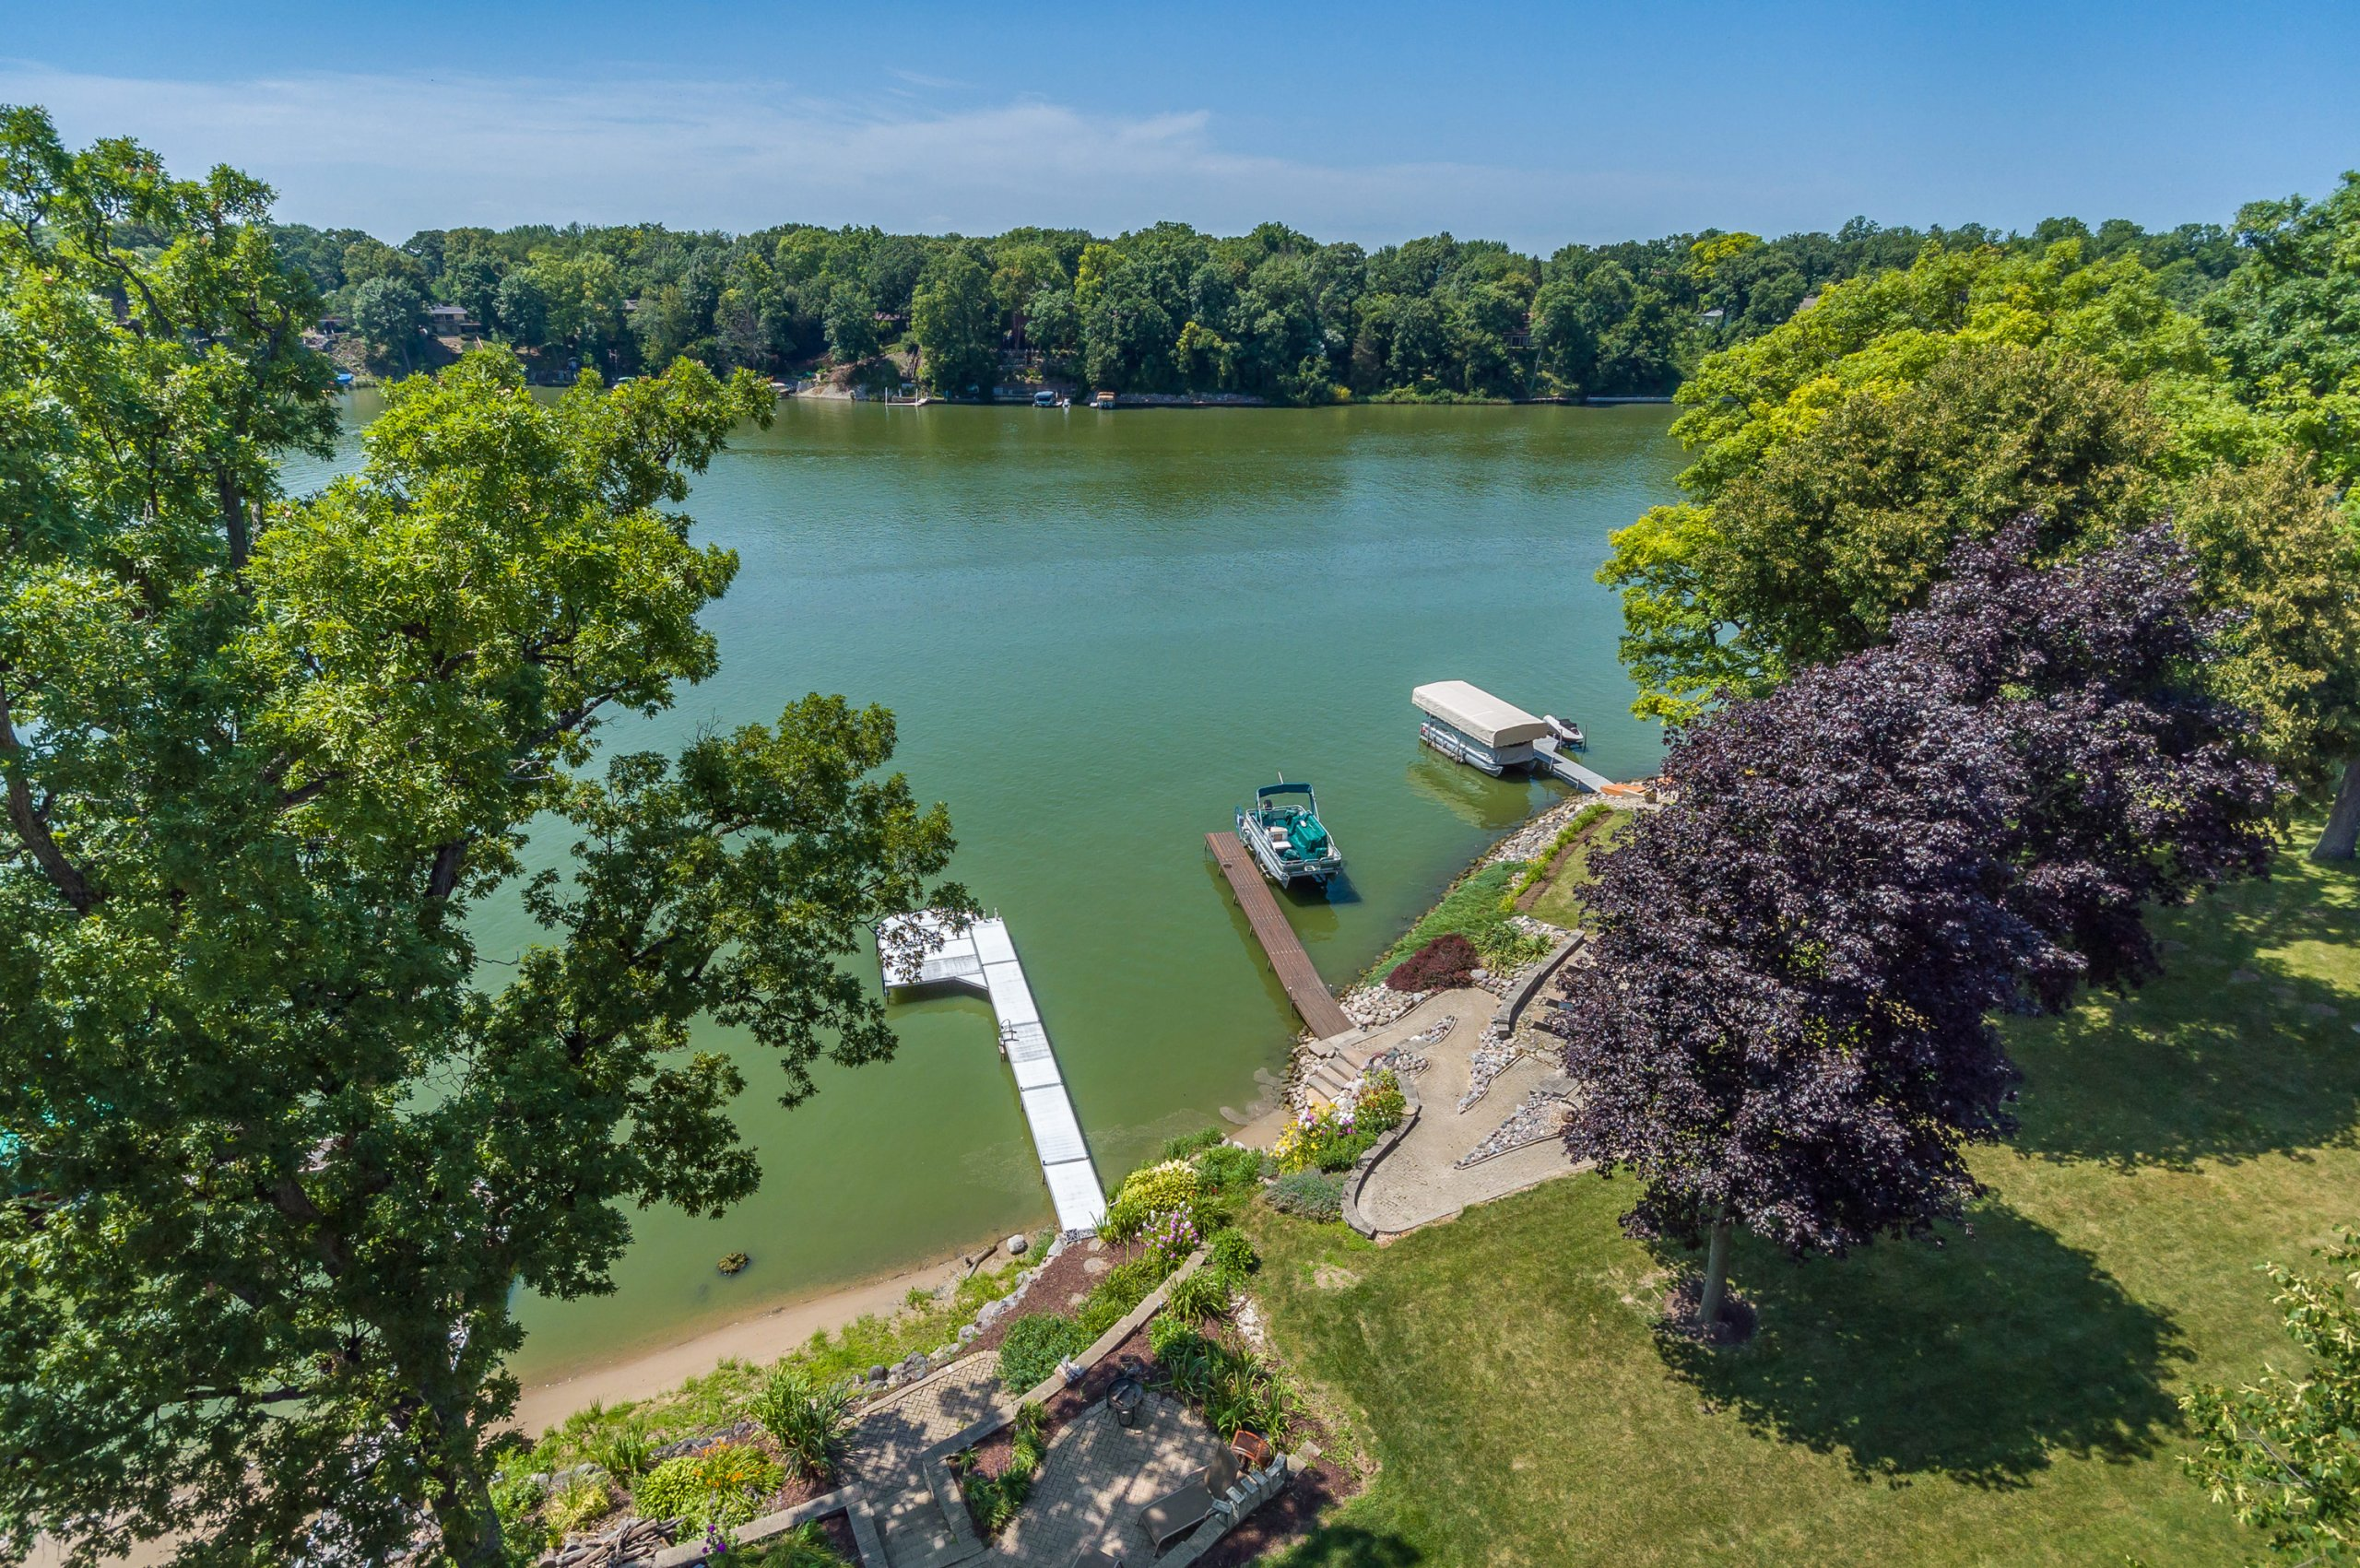 Drone aerial of Lake Holiday, Sandwich, IL.